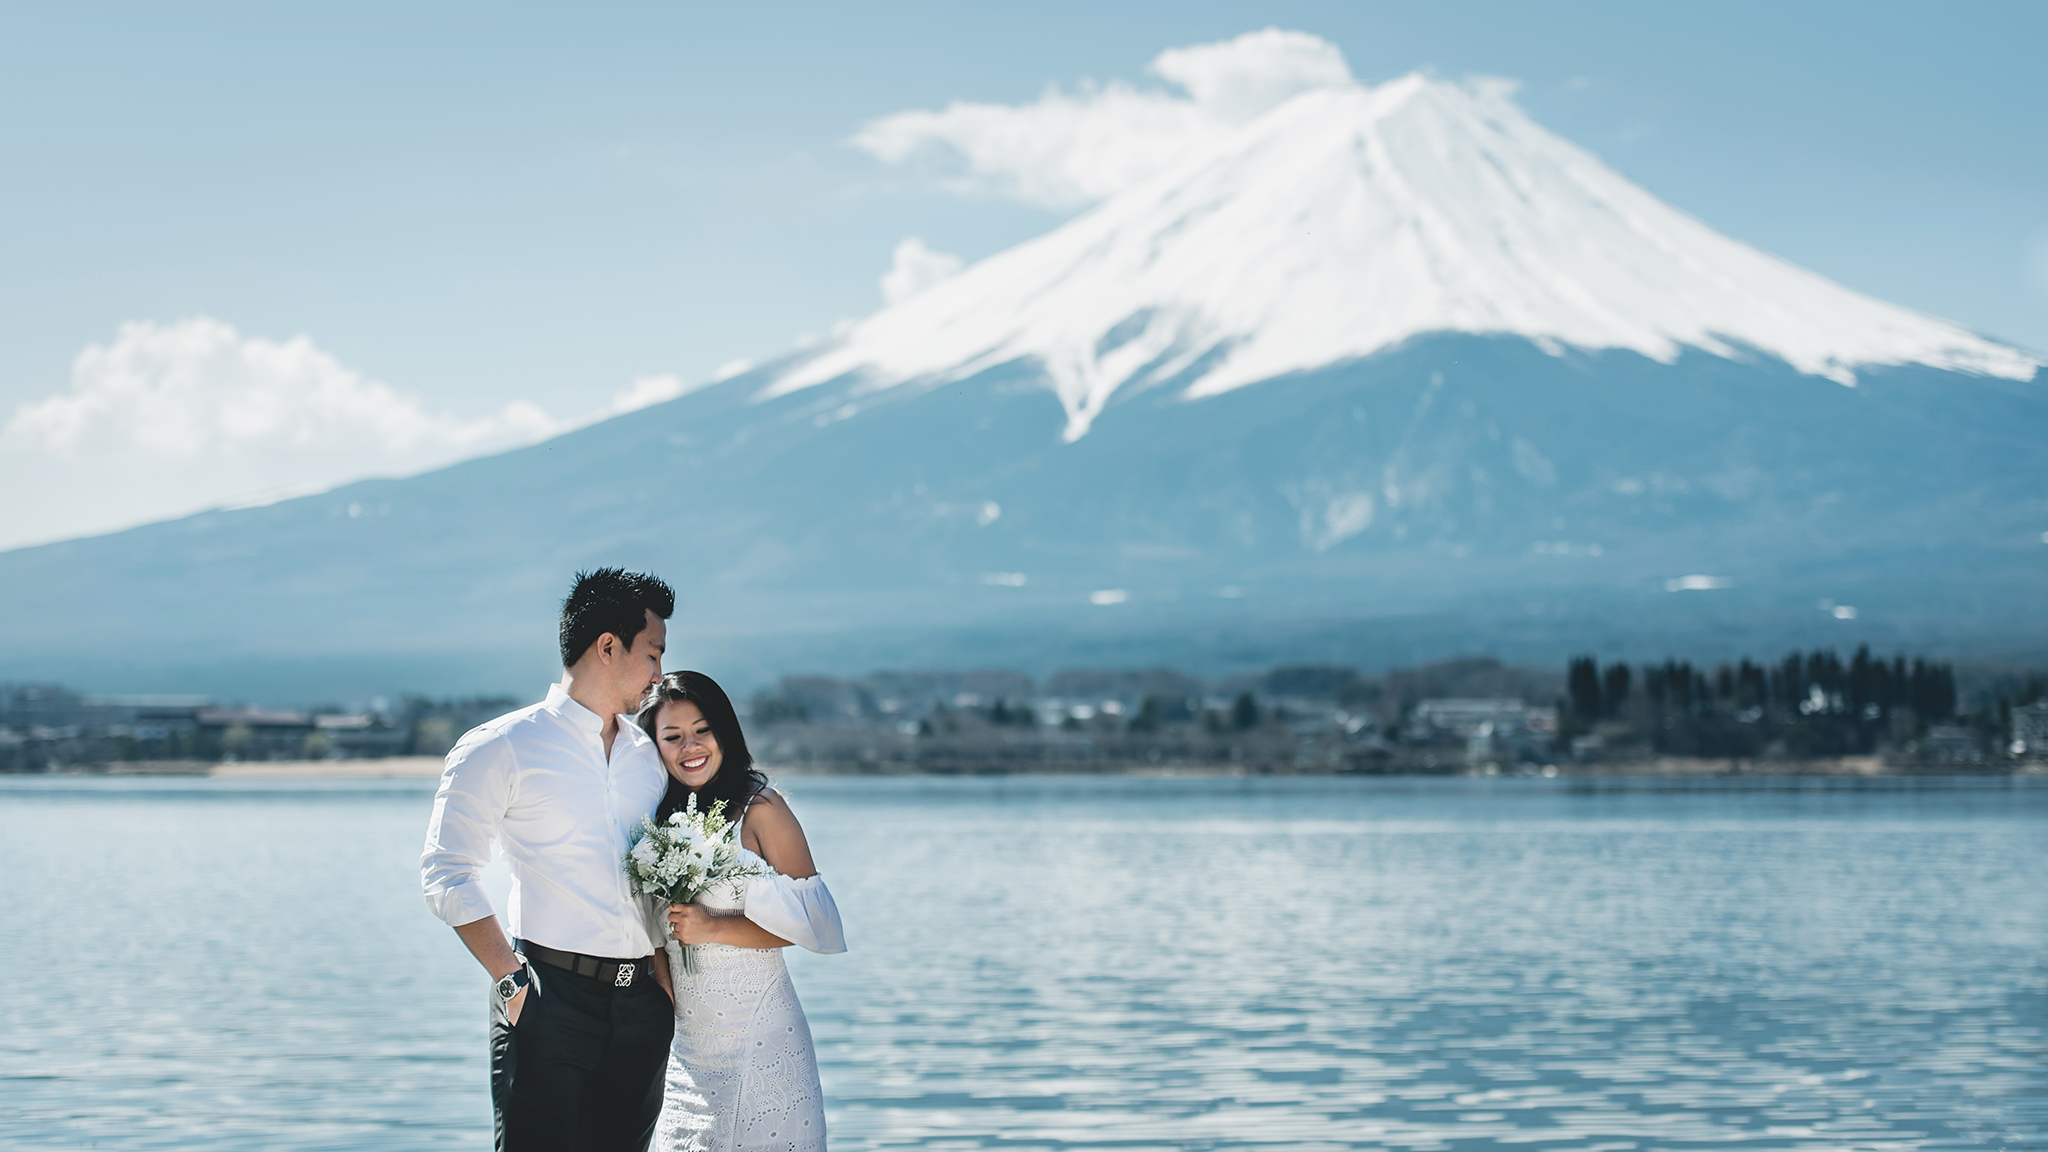 Japan Prewedding 12.JPG